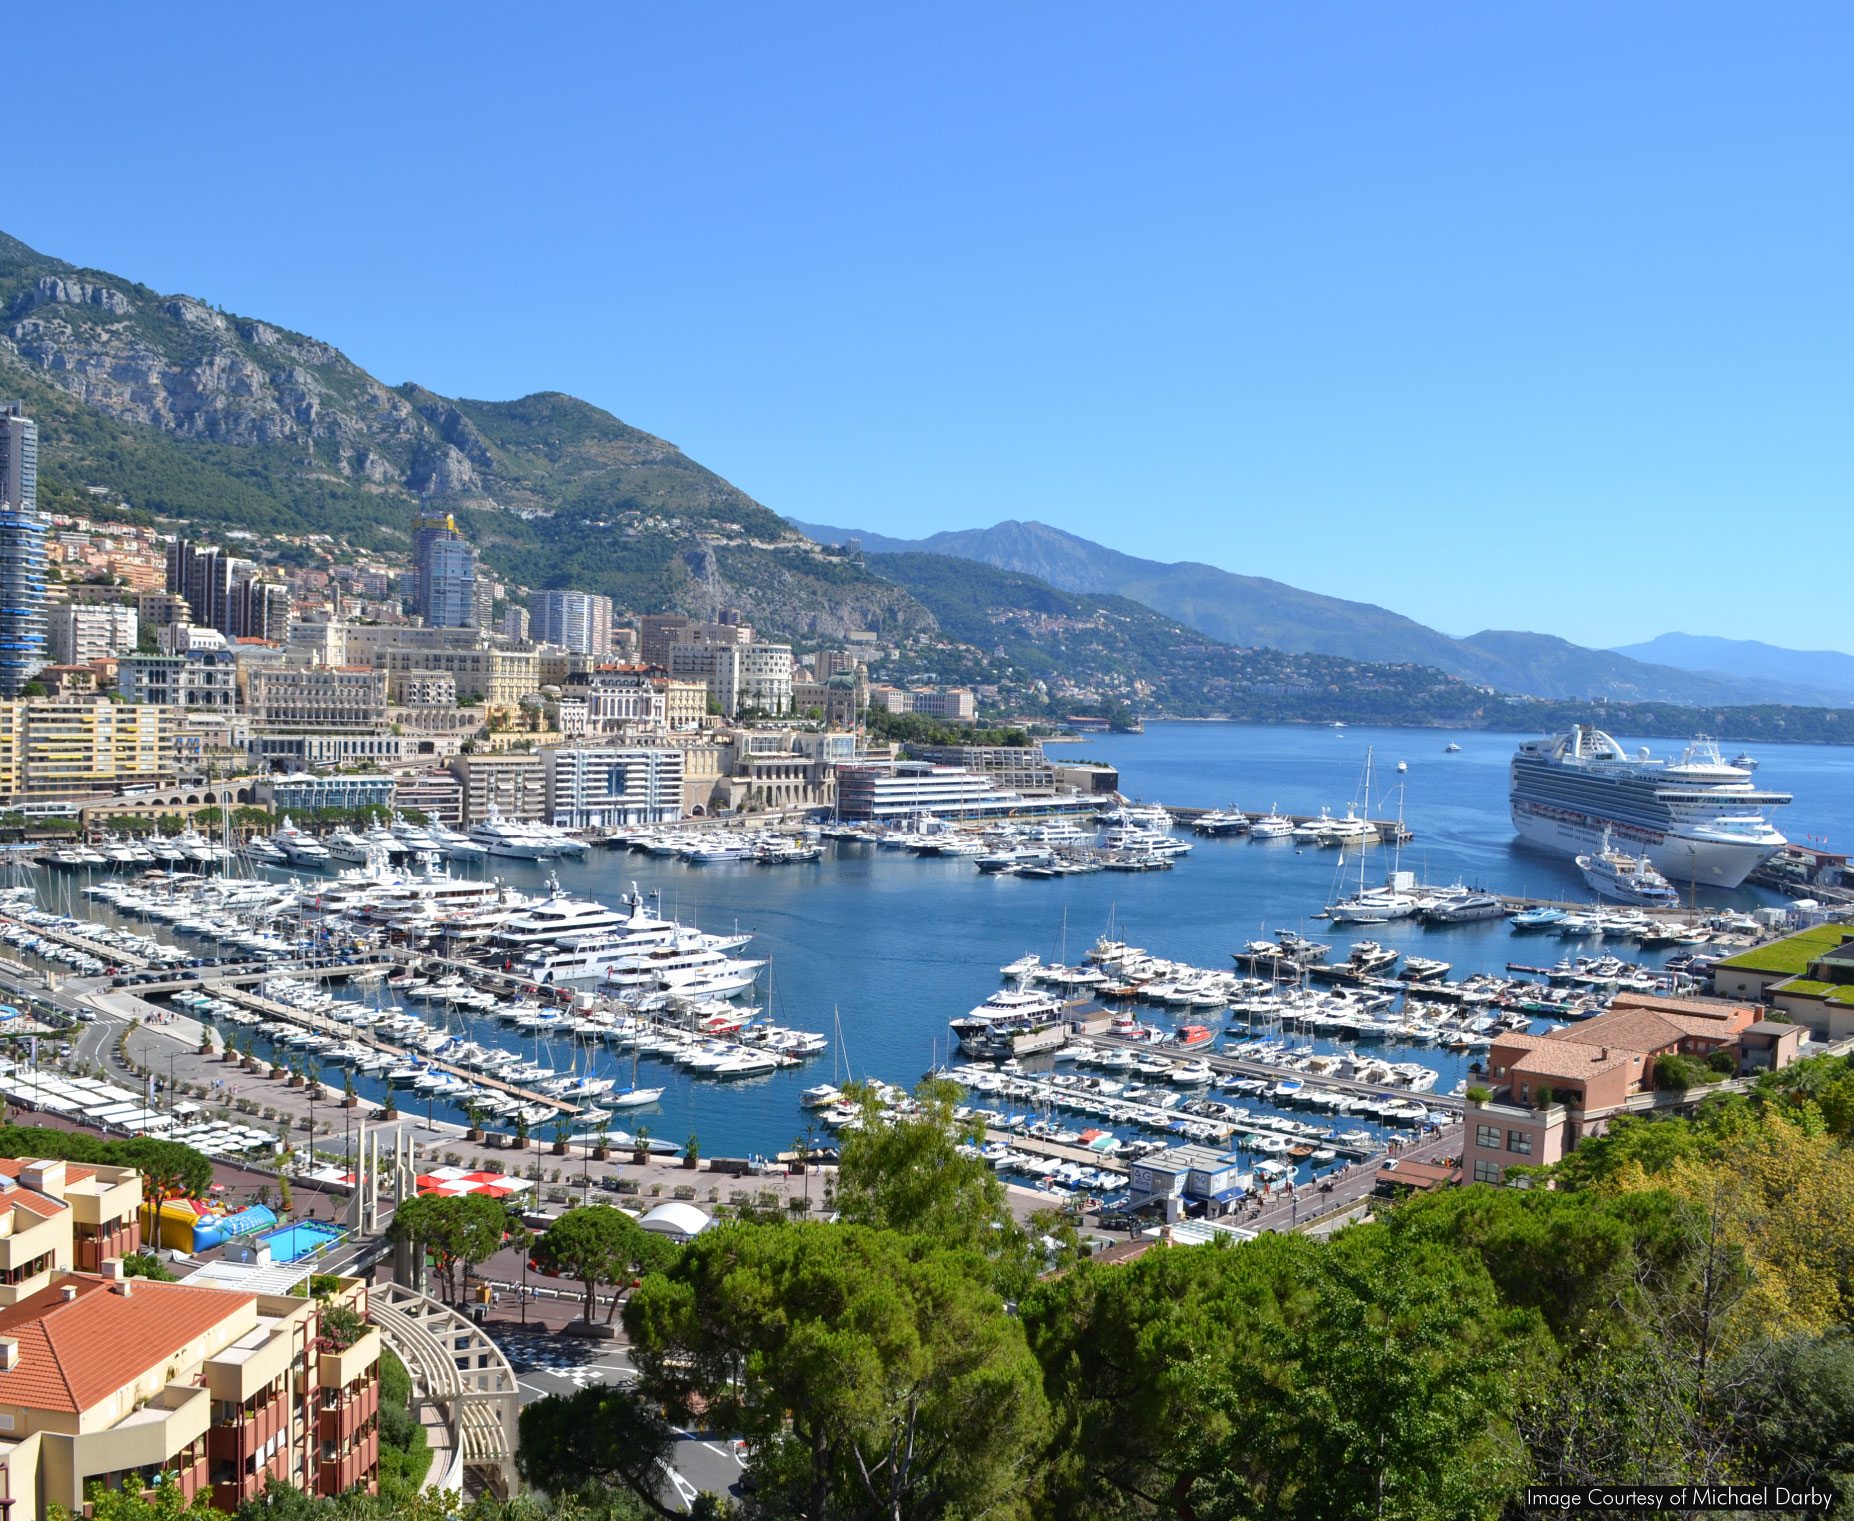 Resized - Monaco Harbour - FLICKR (Michael Darby)-01.jpg